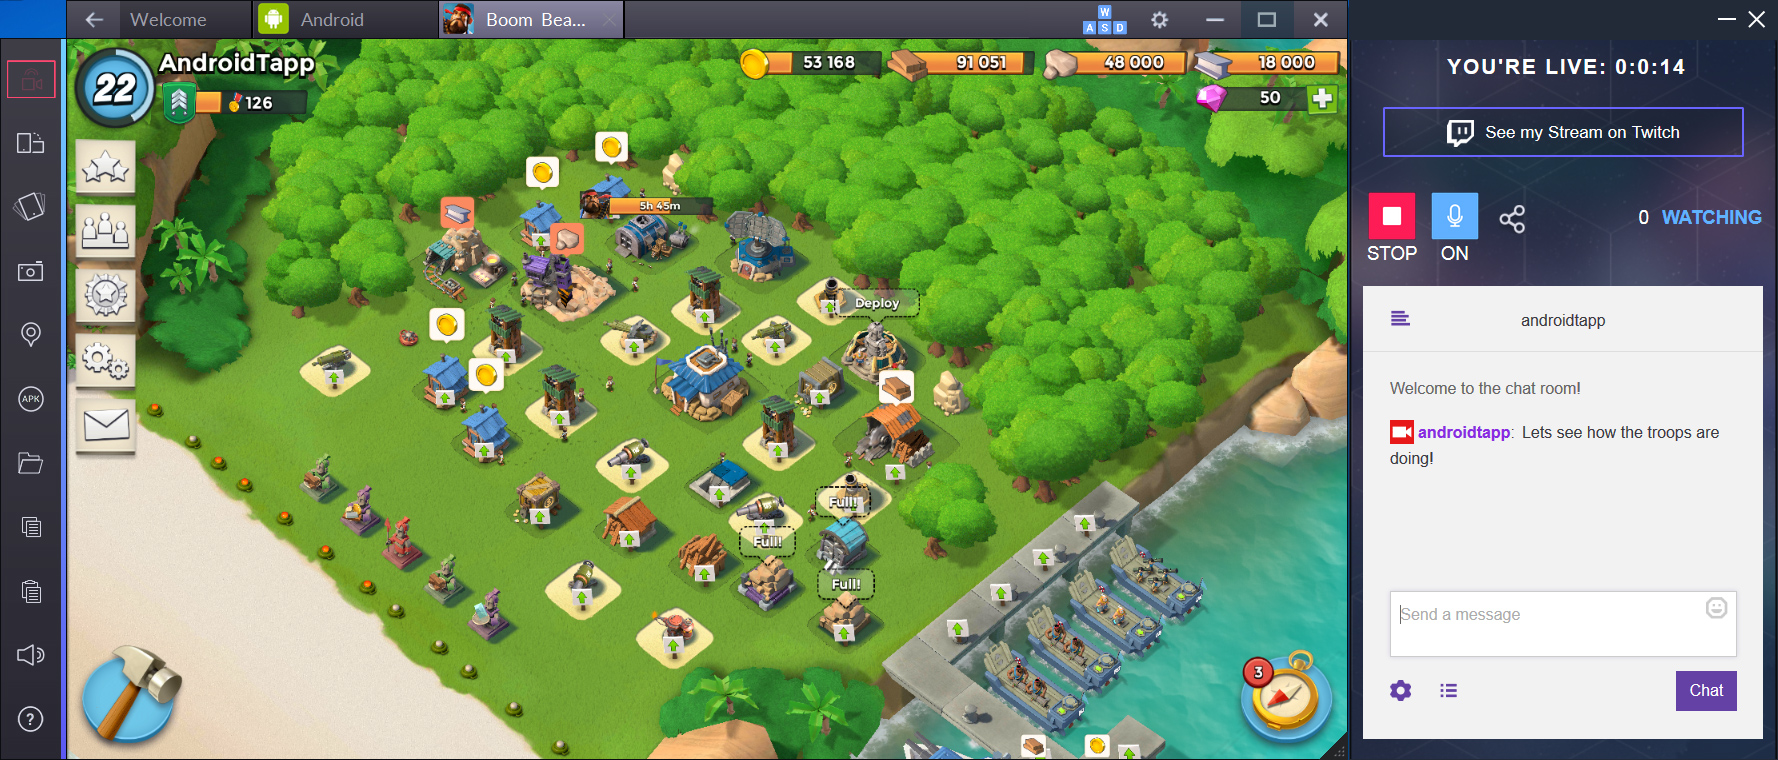 One Click Streaming to Twitch on BlueStacks